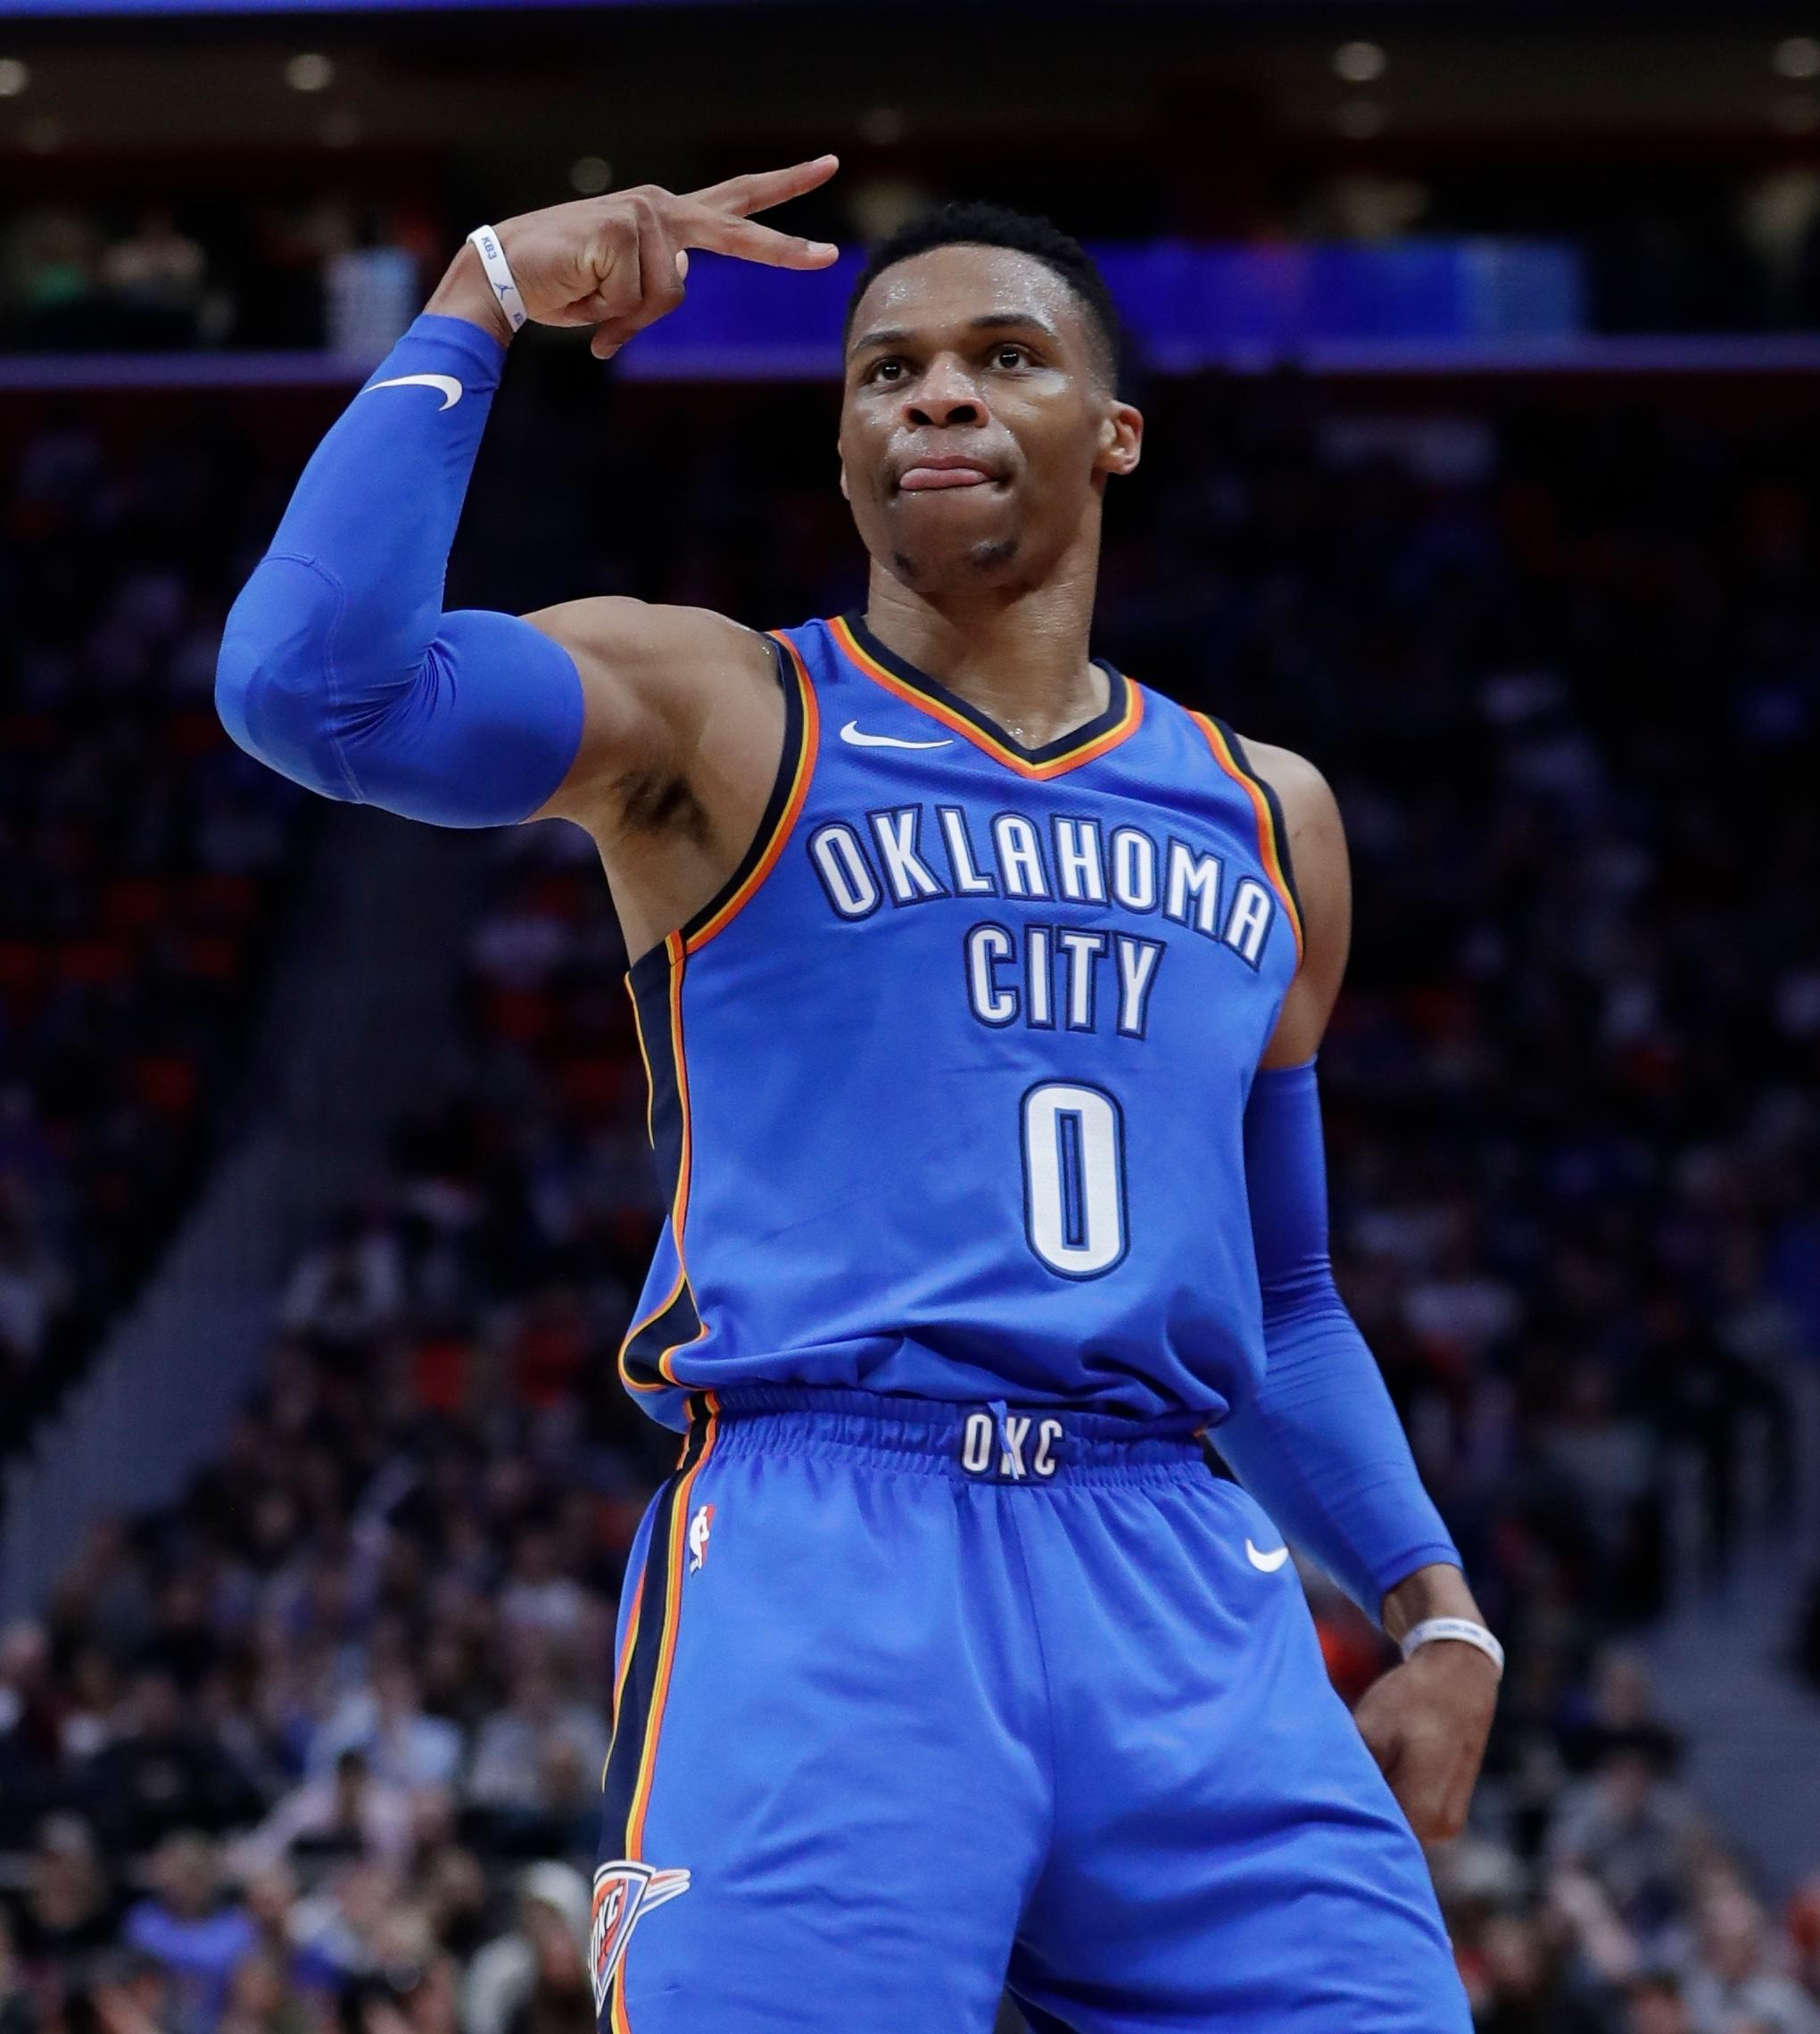 Oklahoma City Thunder guard Russell Westbrook gestures after a basket against the Detroit Pistons during the second half of an NBA basketball game Saturday, Jan. 27, 2018, in Detroit. (AP Photo/Carlos Osorio)